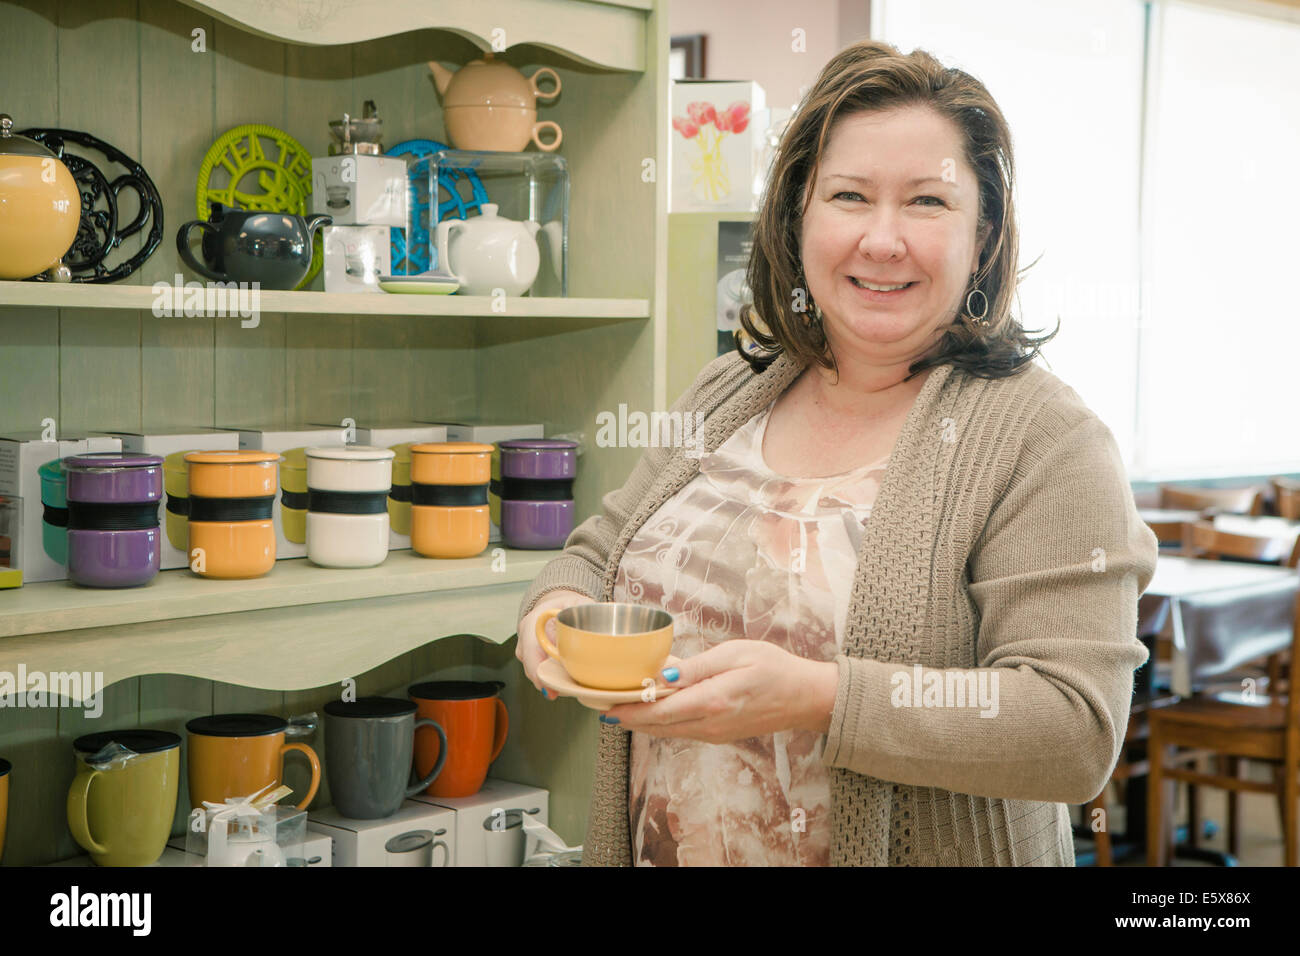 Portrait of mature female business owner in cafe Photo Stock